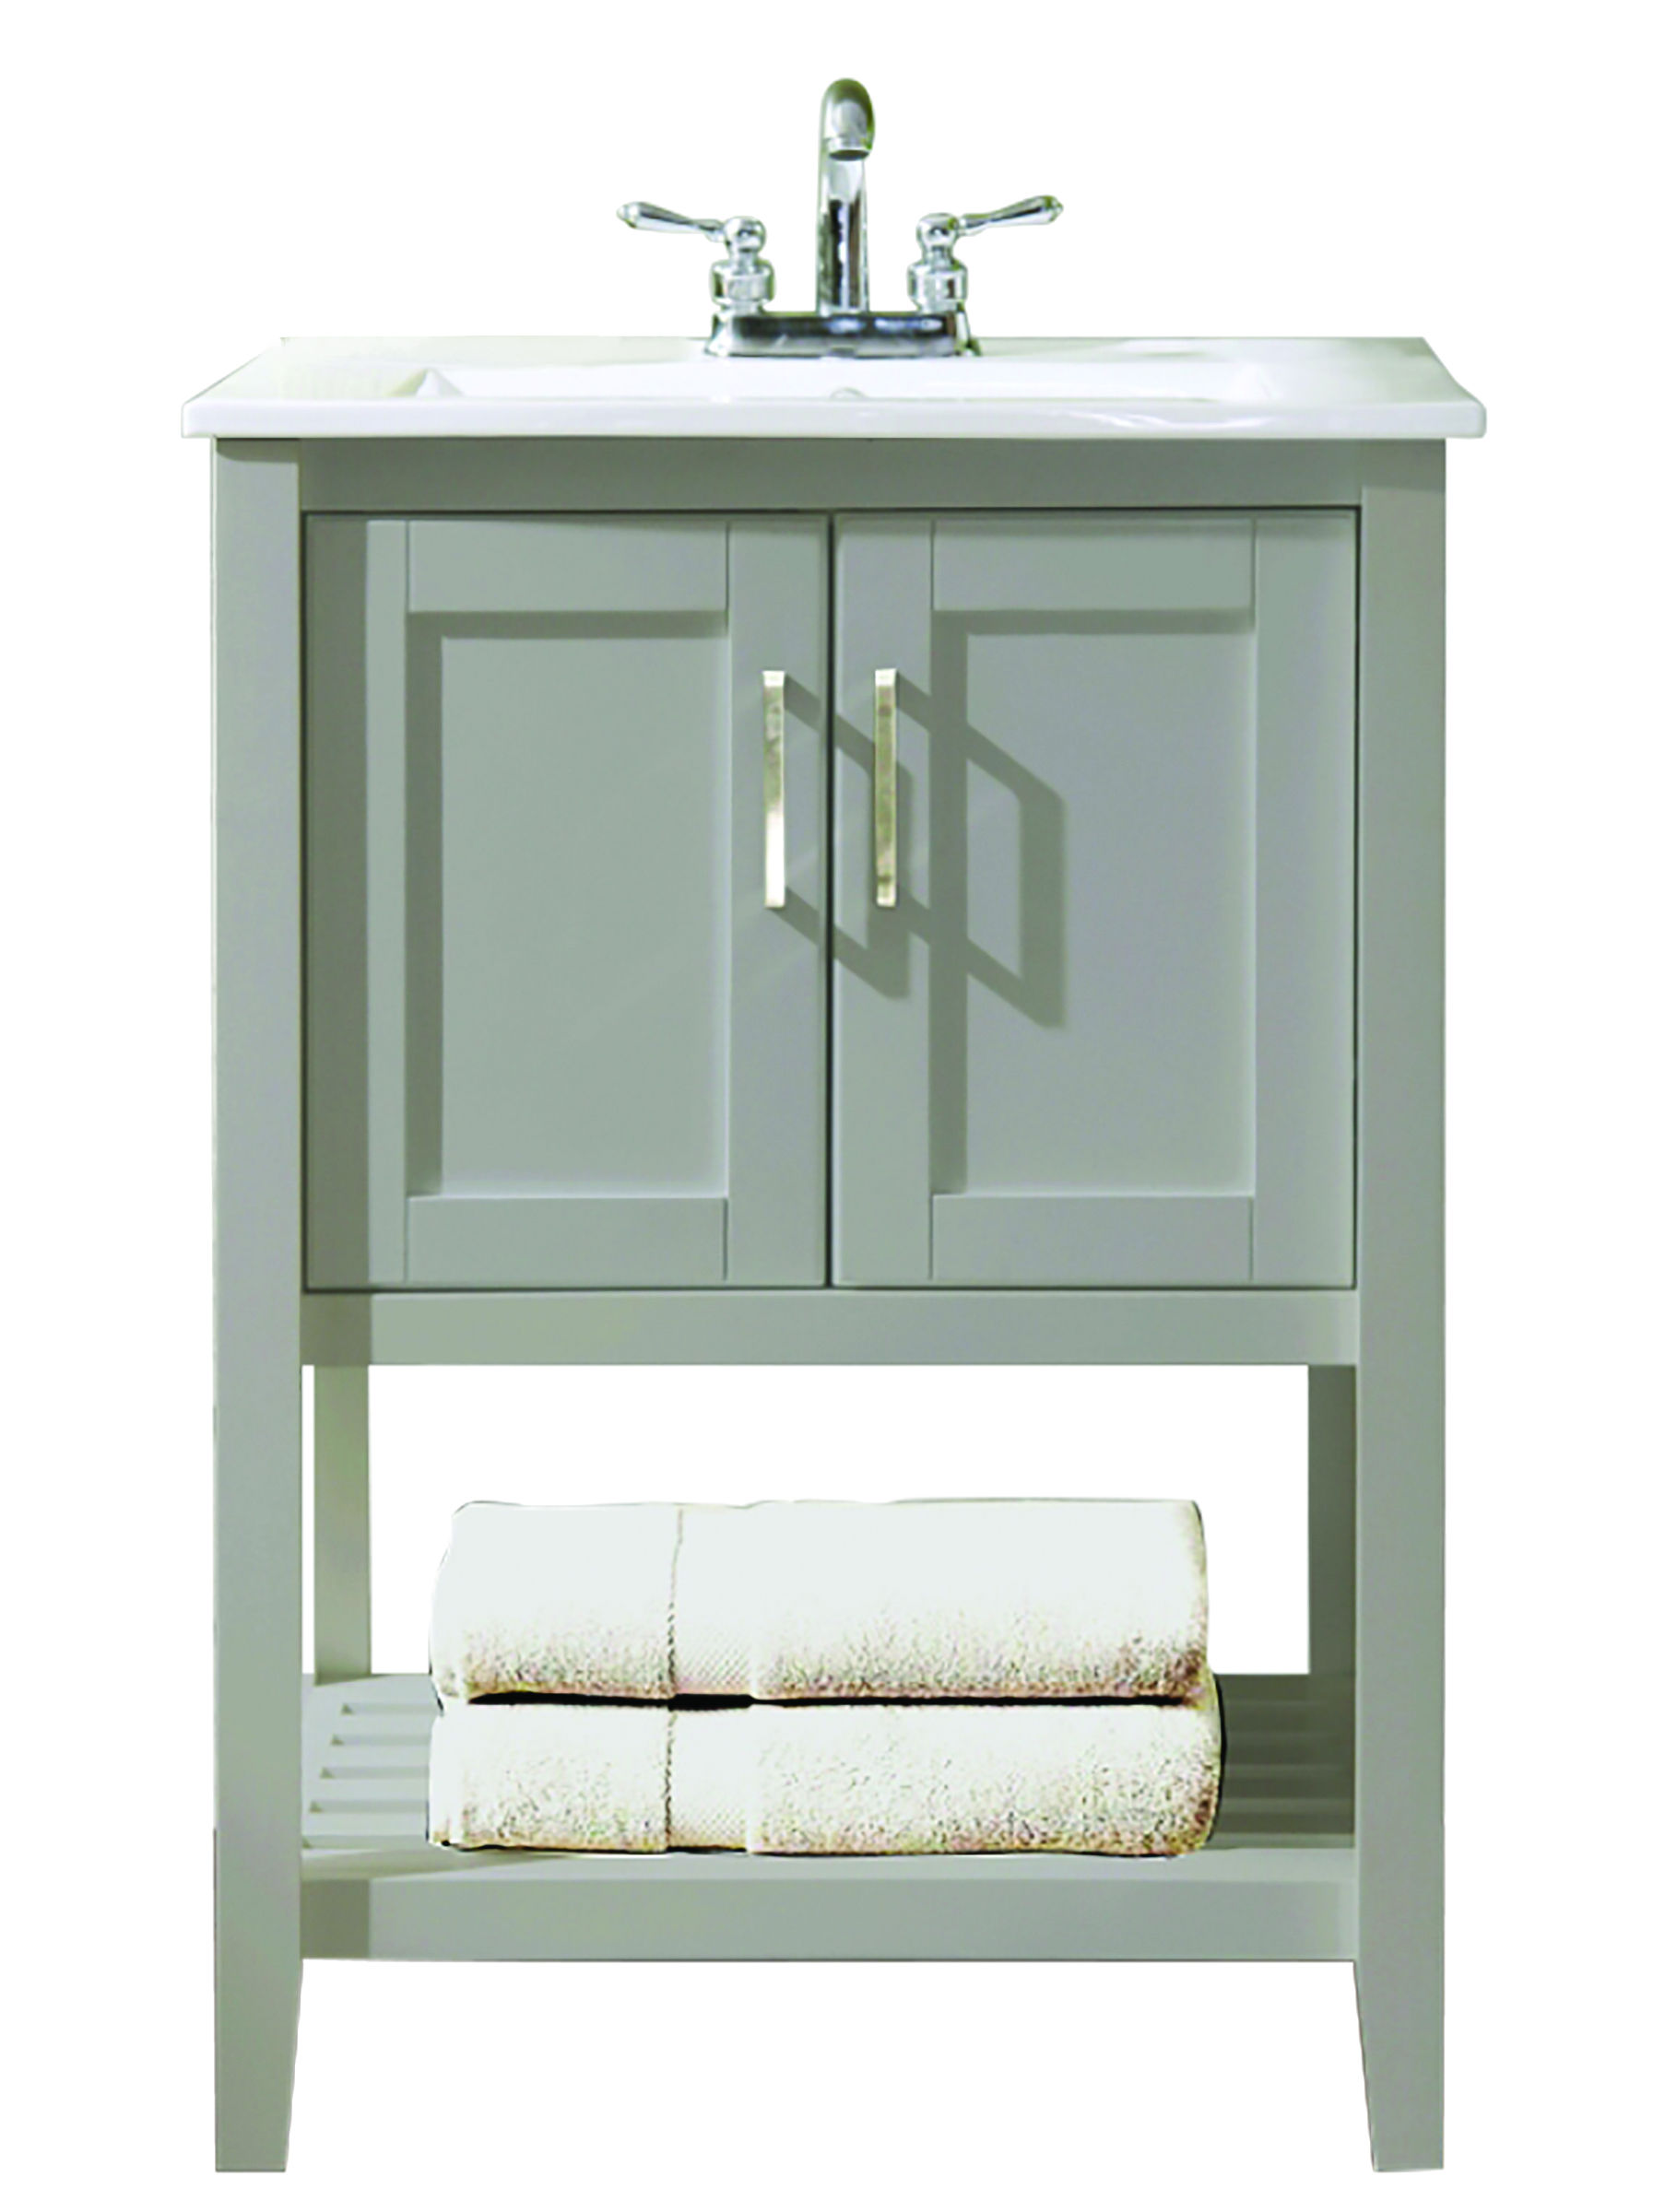 24 X18 X34 Dove Grey Vanity 546846 Bath Furniture Design House